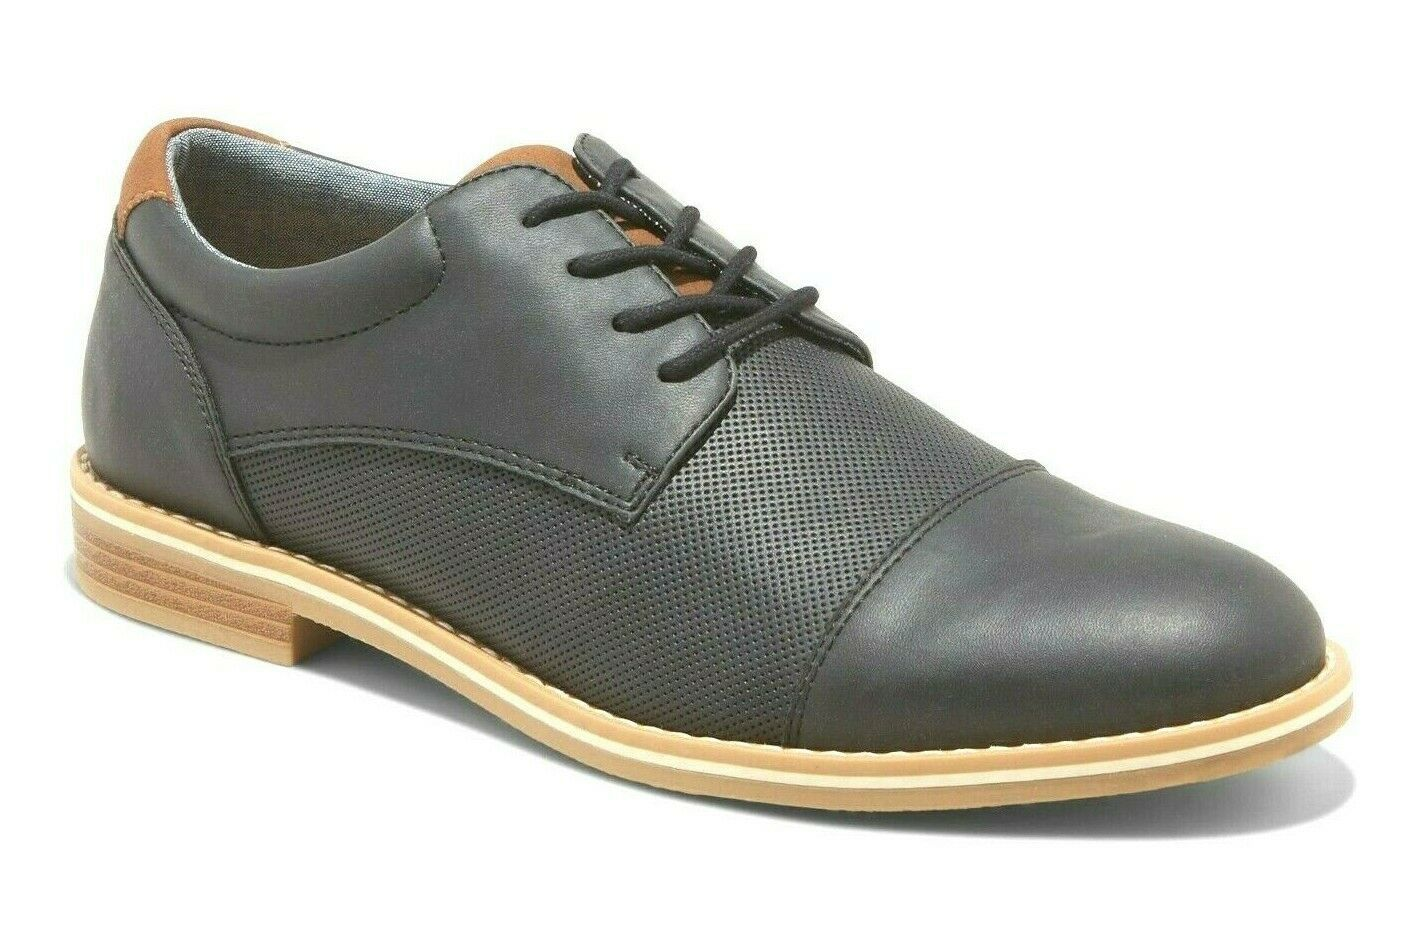 Goodfellow & Co. Black Casual Jarmarcus Lace Up Loafer Shoes Sz 11.5 US NWT